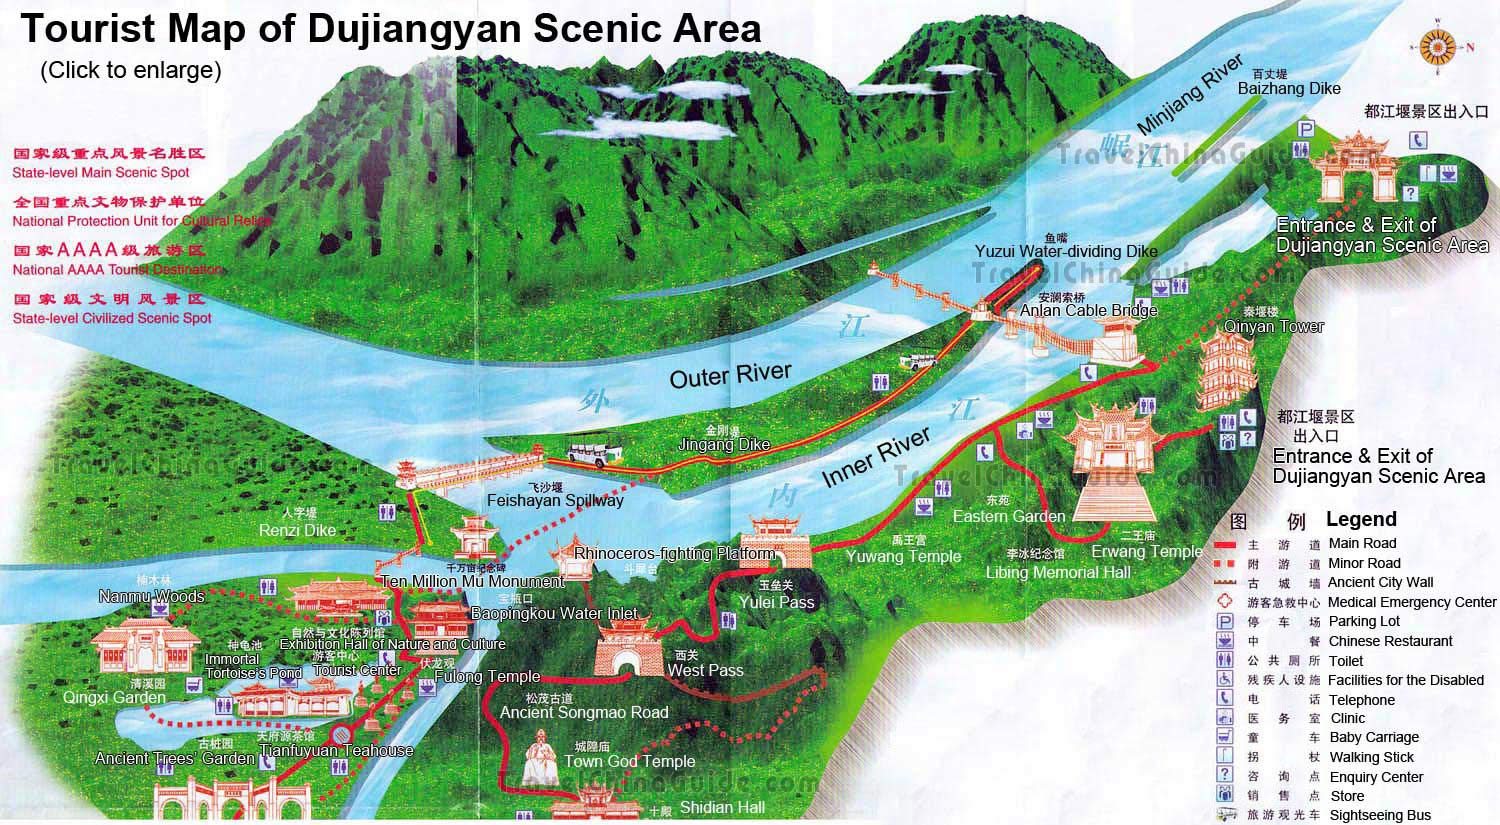 map of Dujianyan site